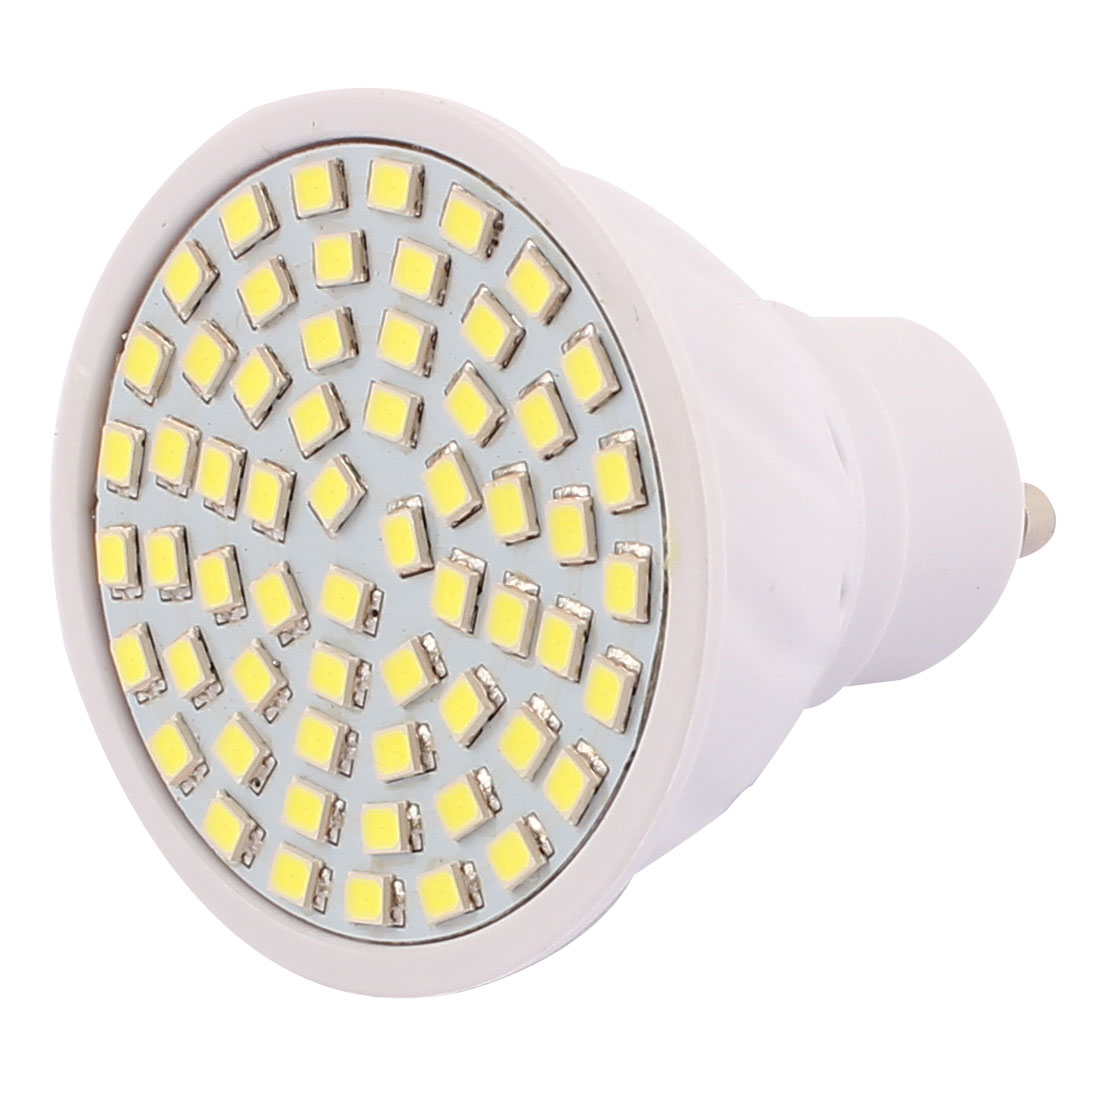 GU10 SMD 2835 60 LEDs Plastic Energy-Saving LED Lamp Bulb White AC 110V 6W